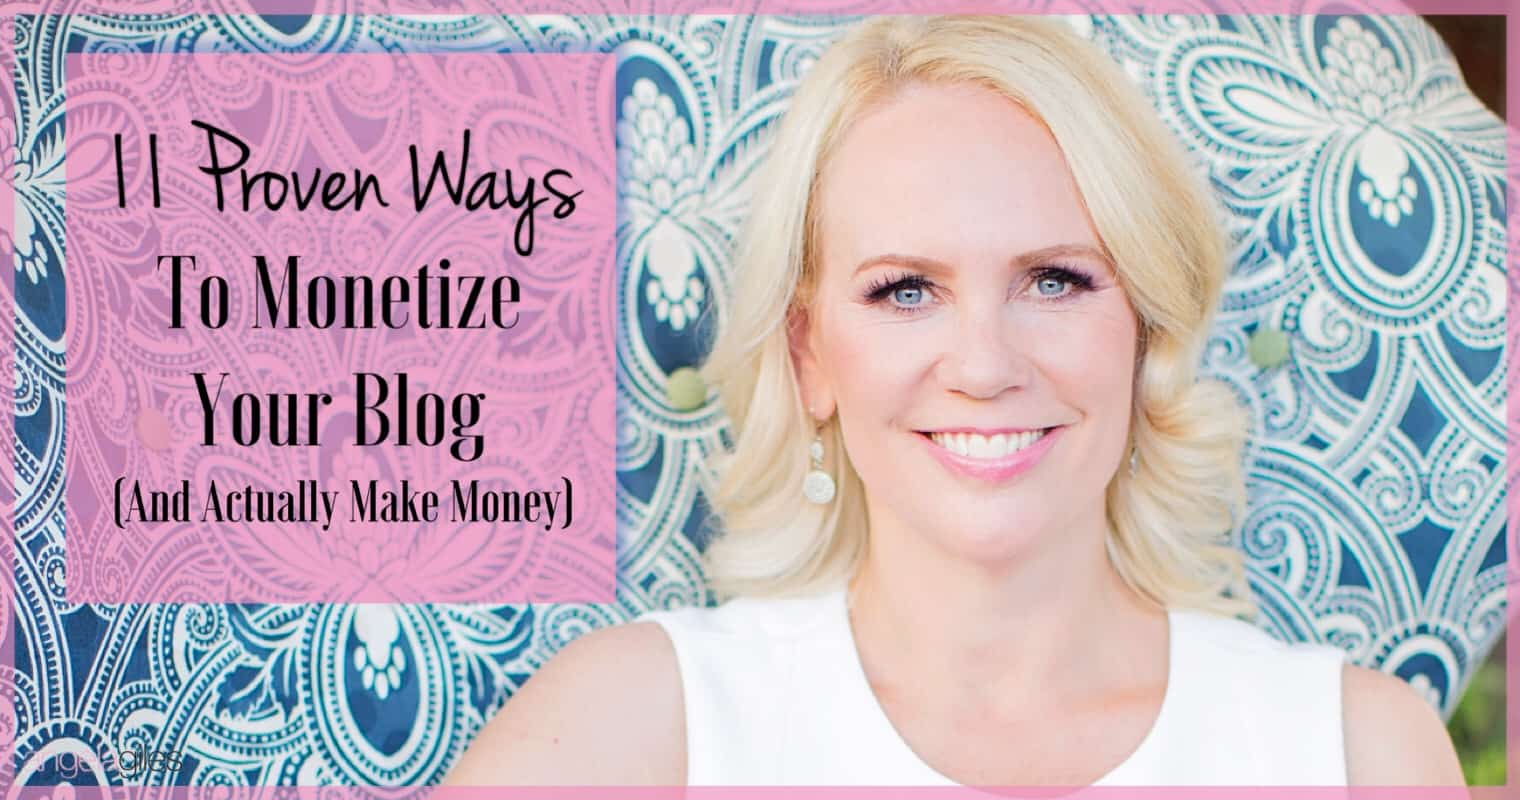 11 Proven Ways To Monetize Your Blog (and actually make money)